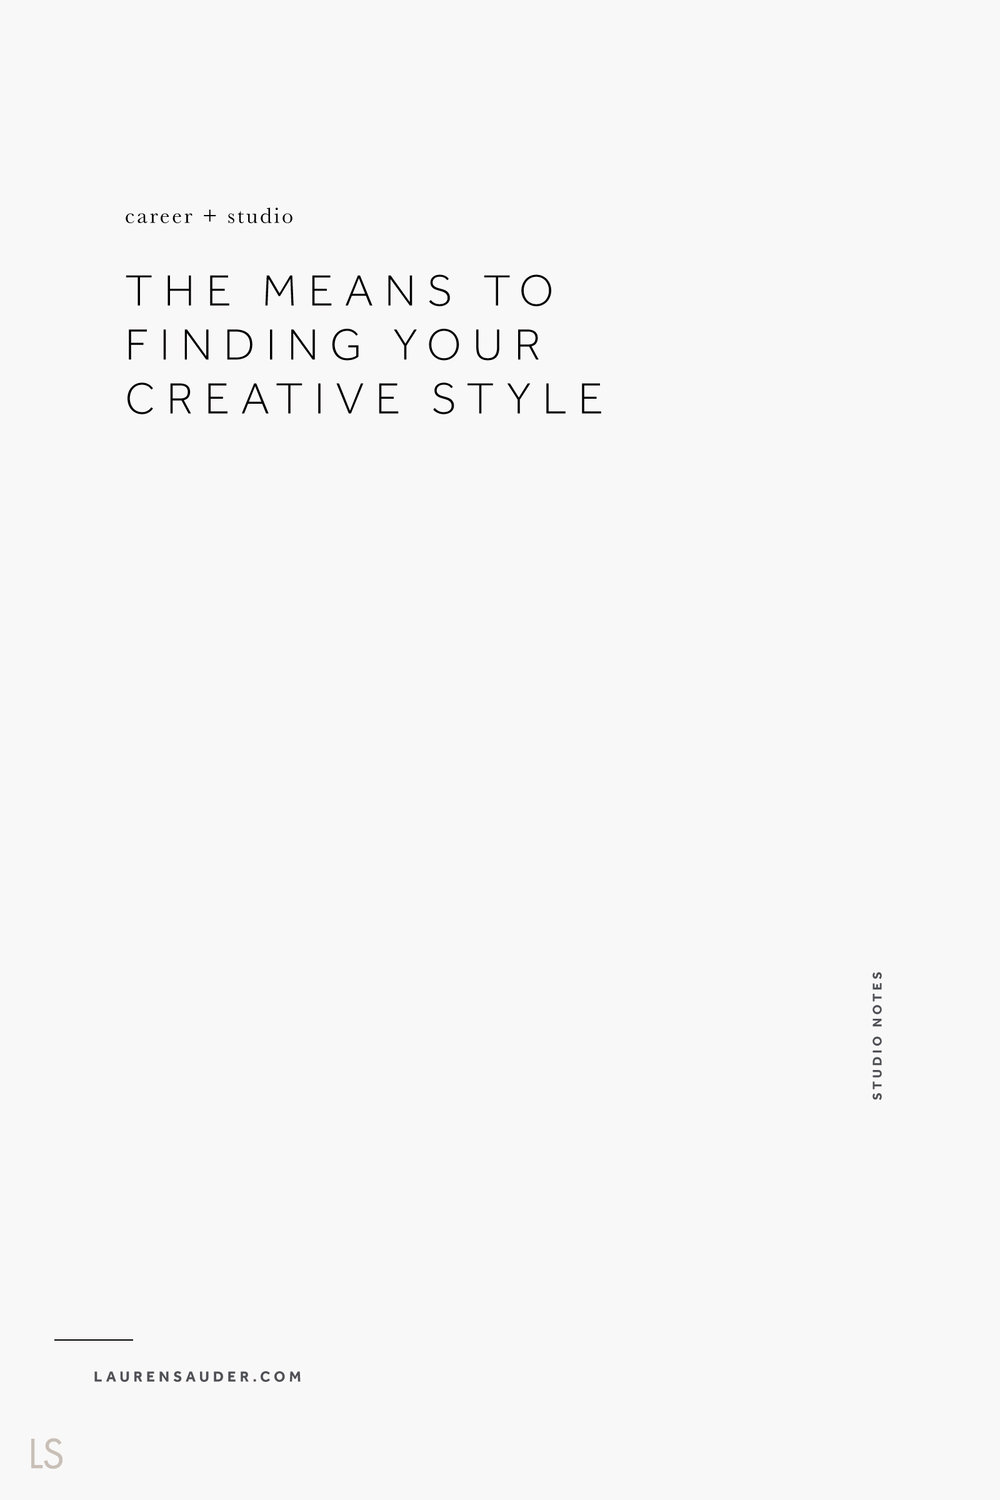 The Means to Finding Your Creative Style - Lauren Sauder #artist #creativestyle creativity, inspiration, musings, design, art, photography